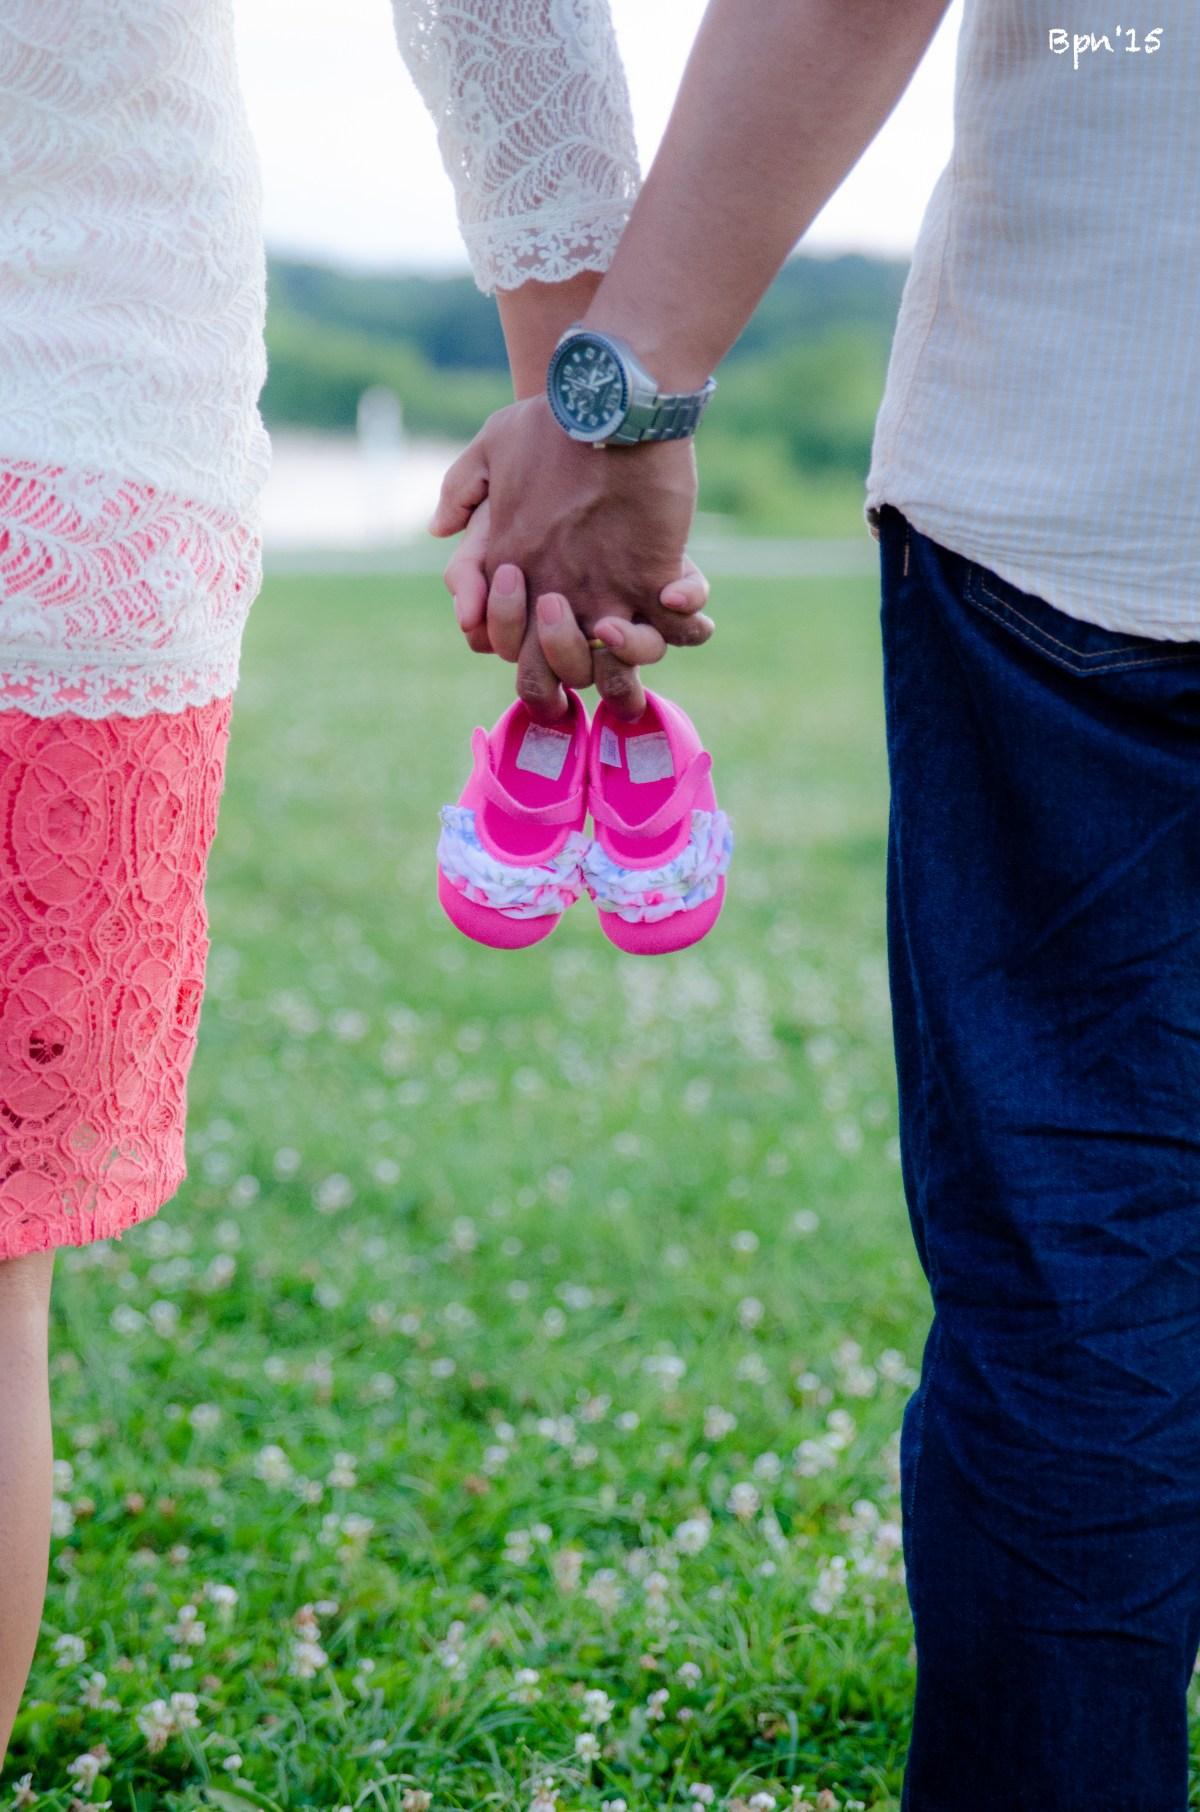 Mom&Dad-to-be holding baby shoe